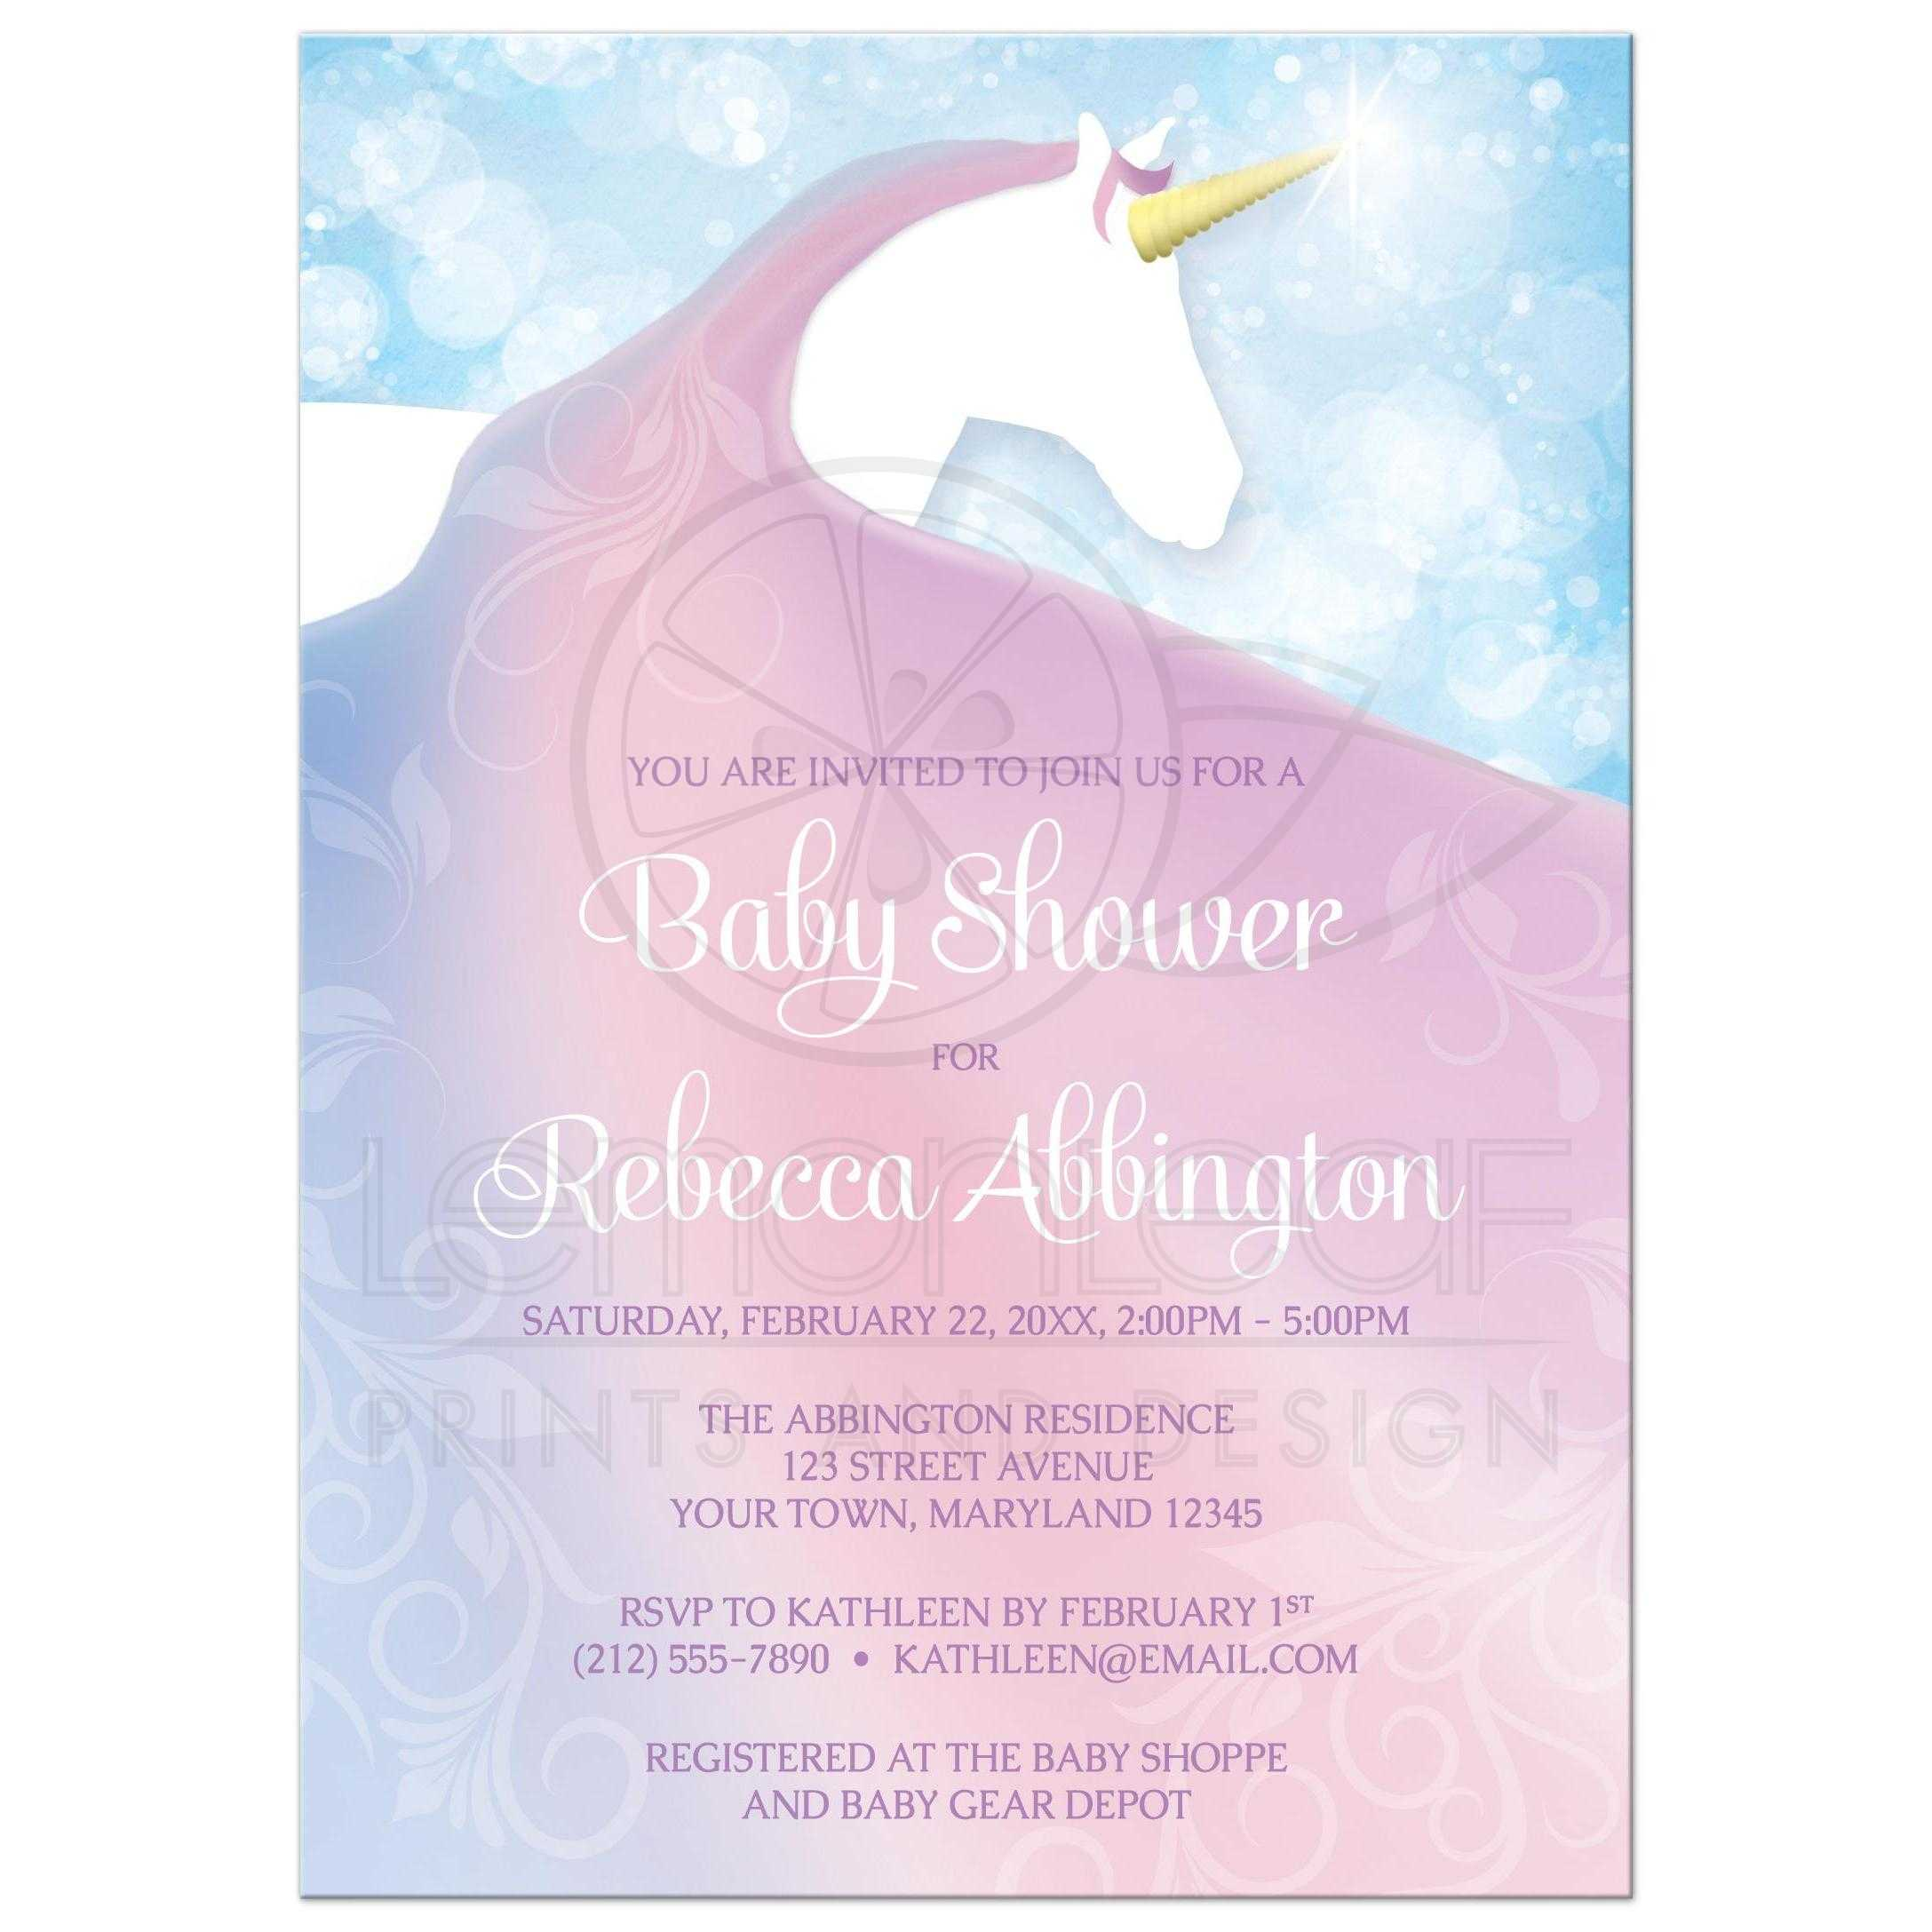 Baby shower invitations magical unicorn in pink blue and purple filmwisefo